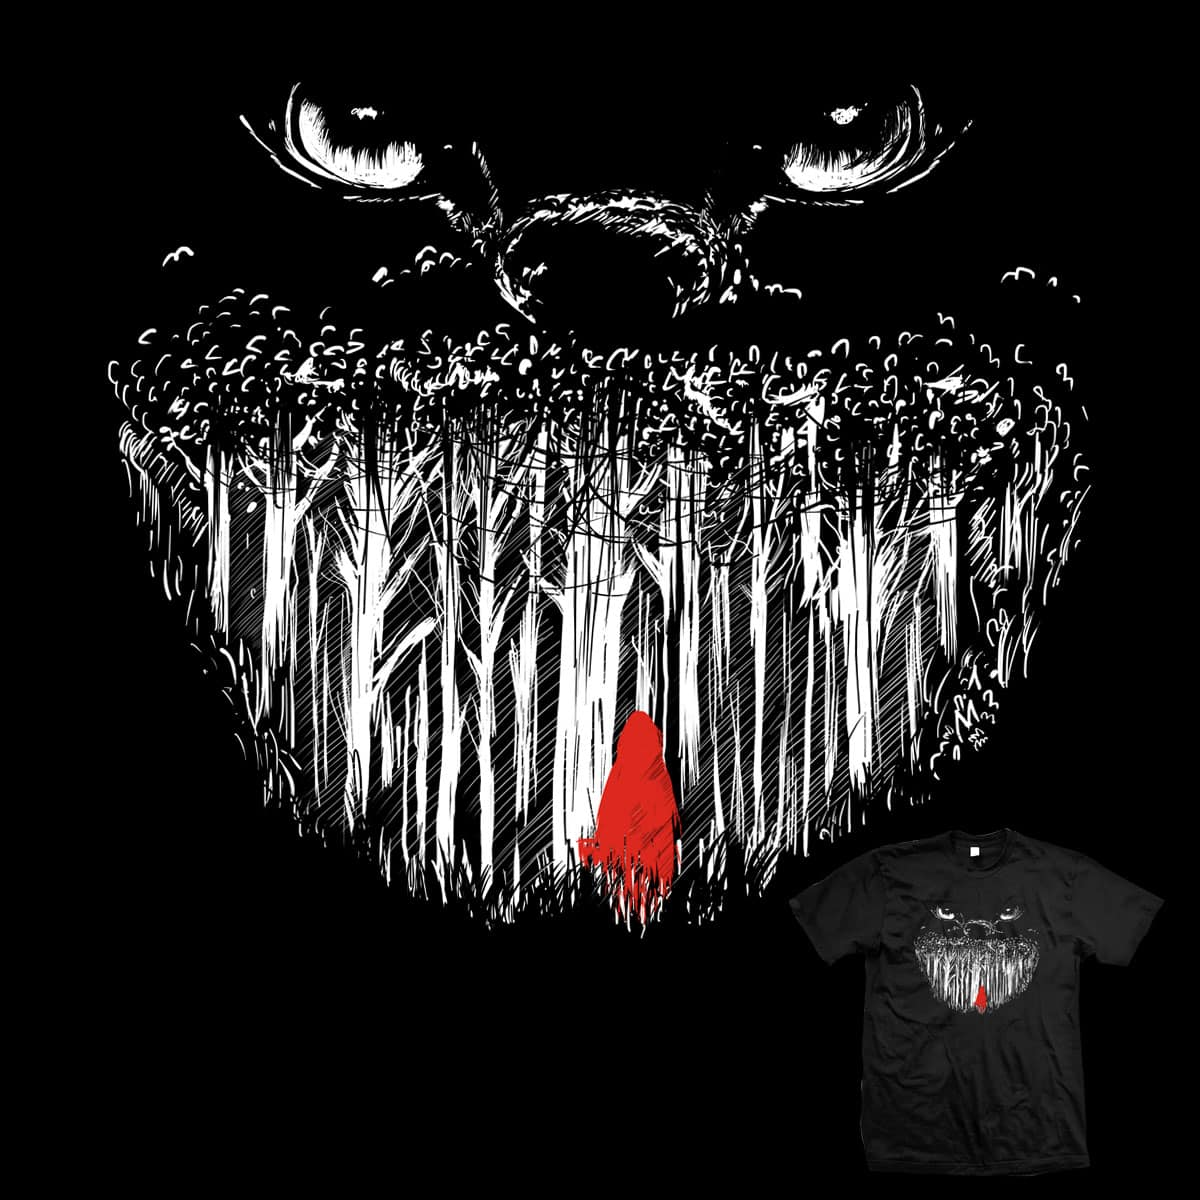 grin forest by mainial on Threadless